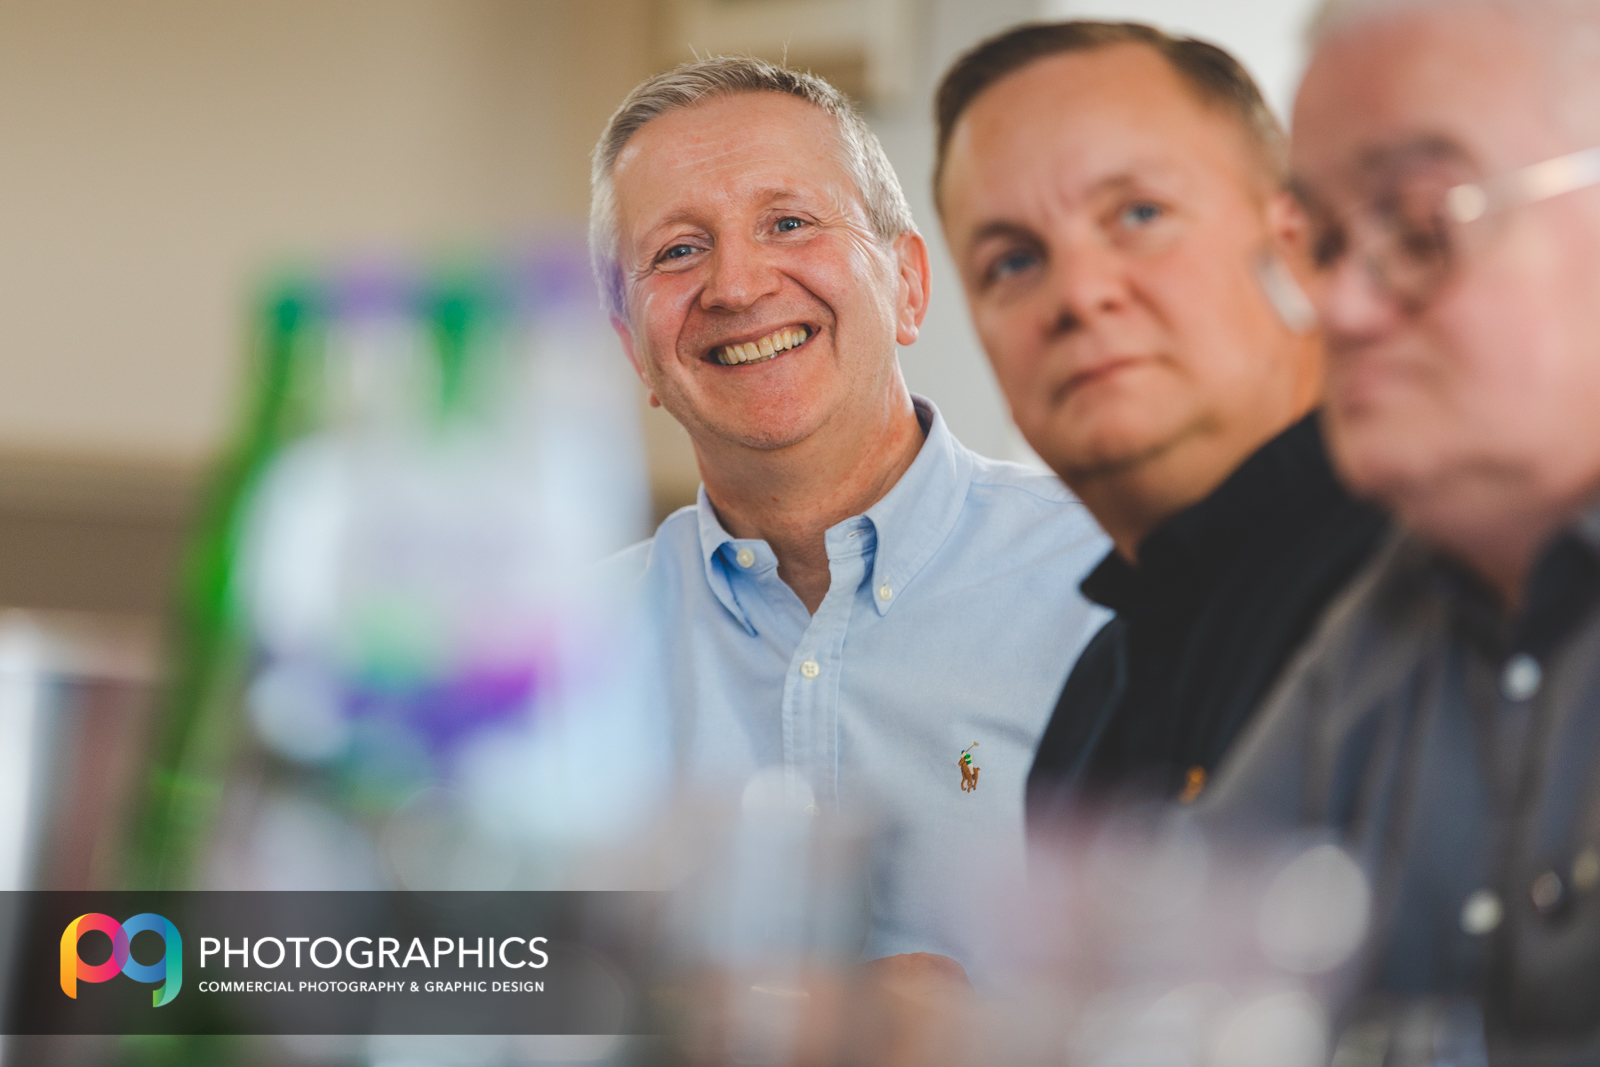 whisky-tasting-event-photography-glasgow-edinburgh-scotland-11.jpg